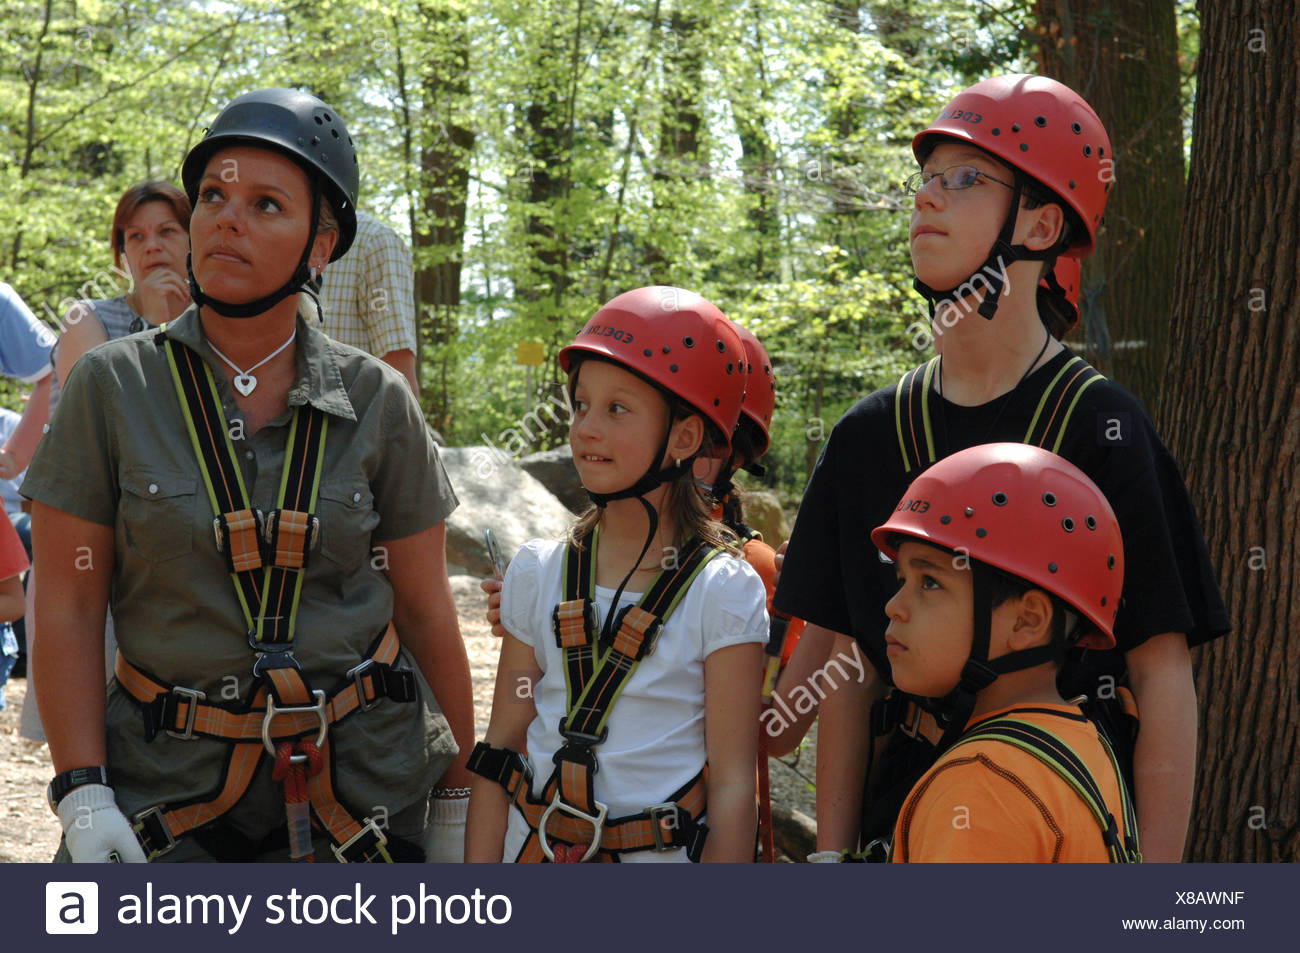 Instruction for climbing, Climbing forest, Neroberg, Wiesbaden, Hesen, Germany - Stock Image